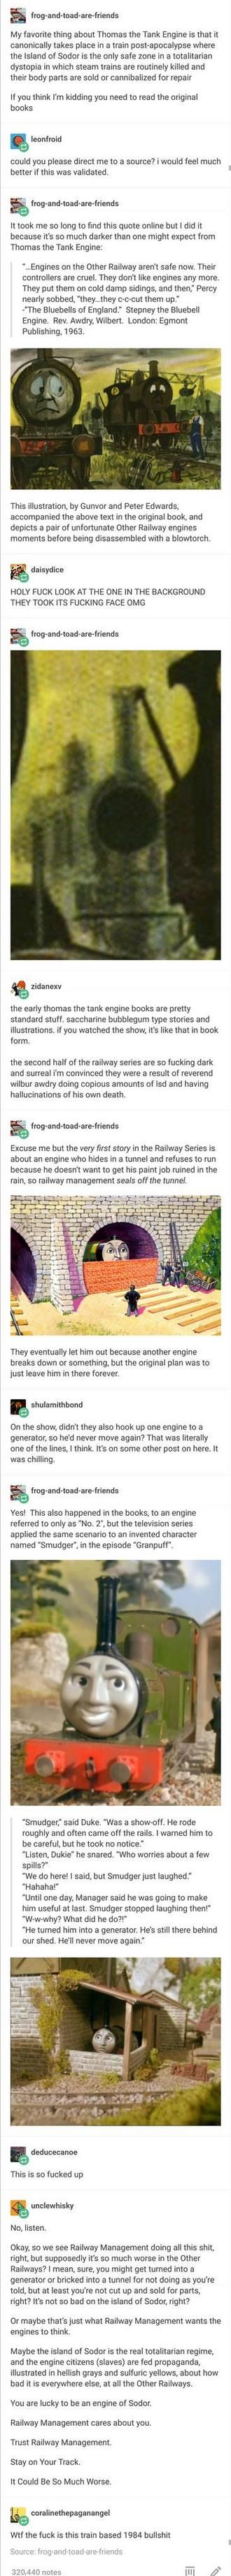 Thomas the Tank Engine Dystopian Discourse